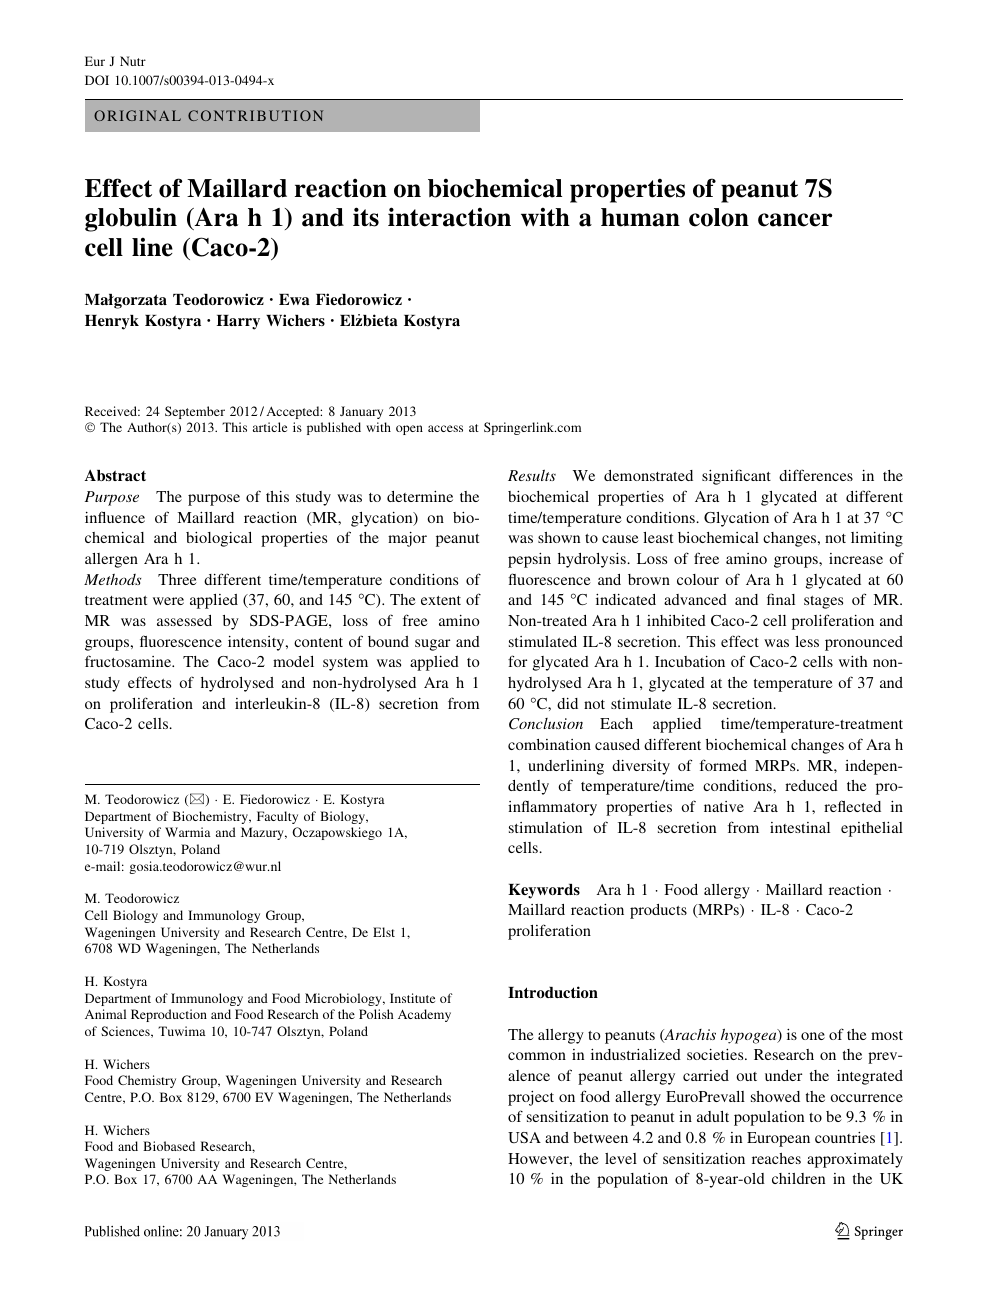 Effect Of Maillard Reaction On Biochemical Properties Of Peanut 7s Globulin Ara H 1 And Its Interaction With A Human Colon Cancer Cell Line Caco 2 Topic Of Research Paper In Chemical